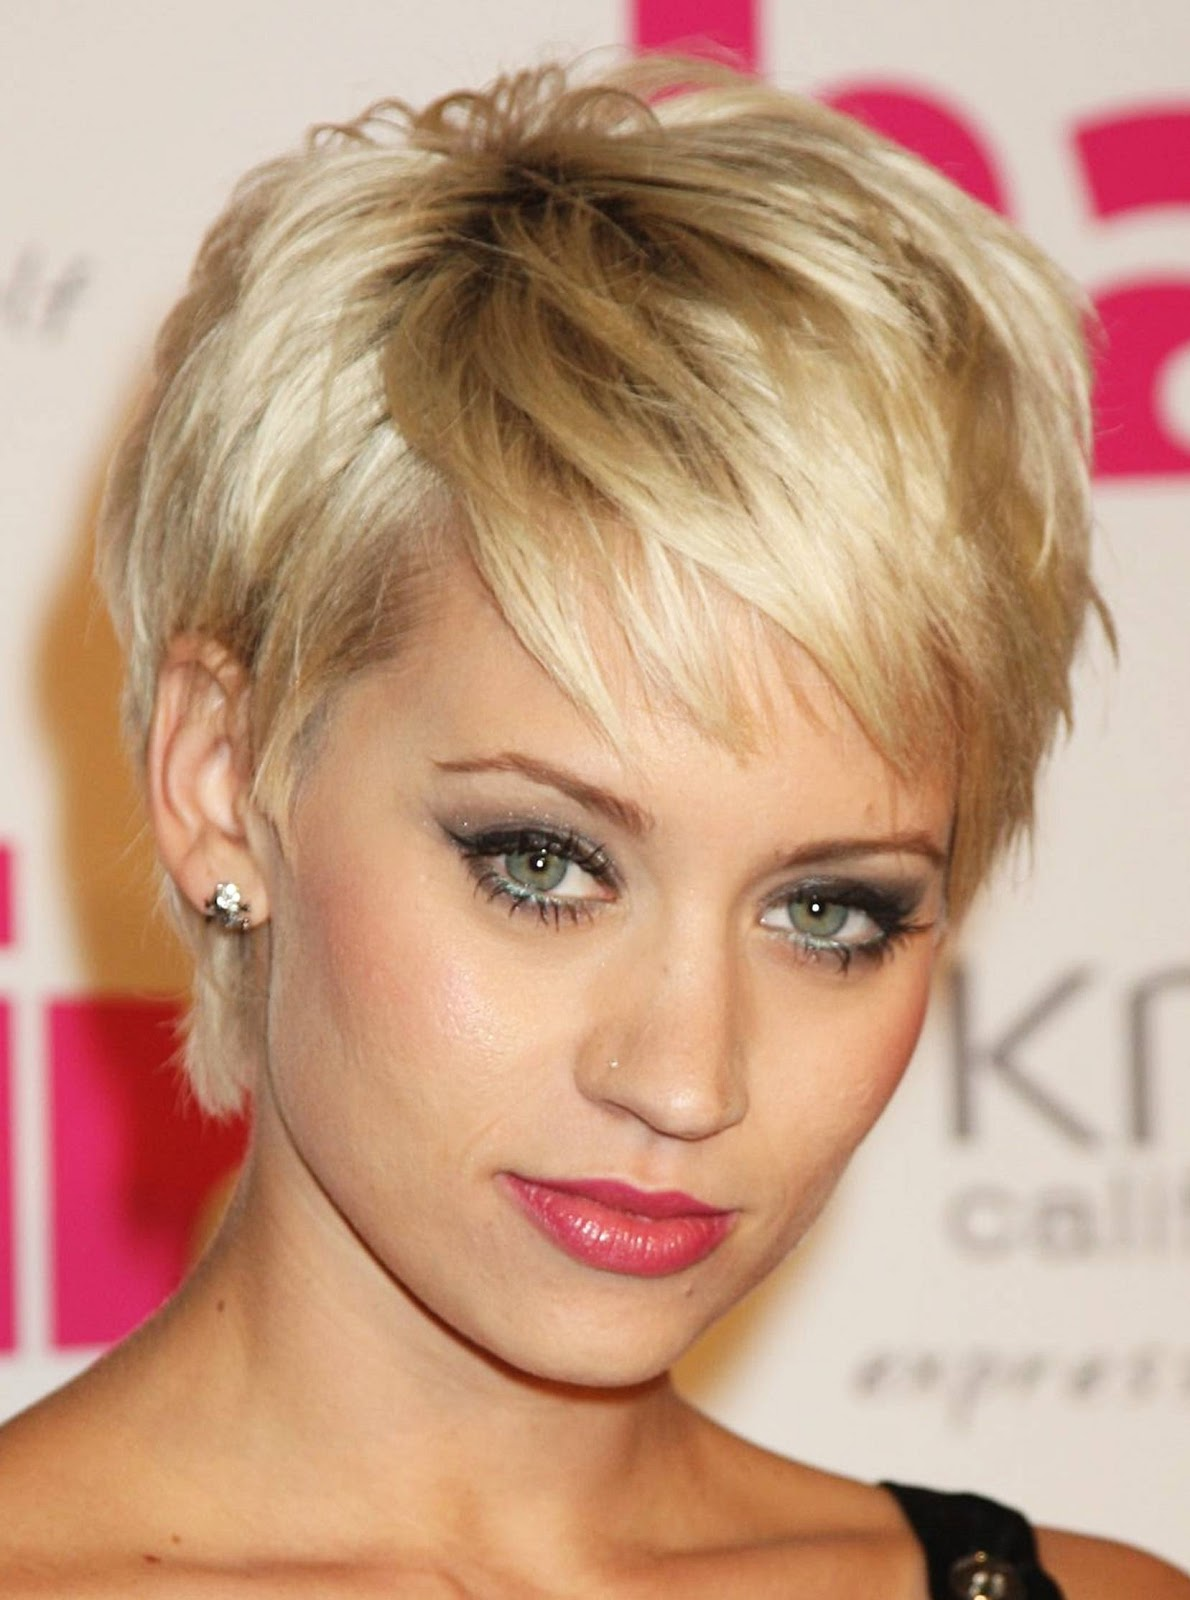 Best Cool Hairstyles: party hairstyles for short hair